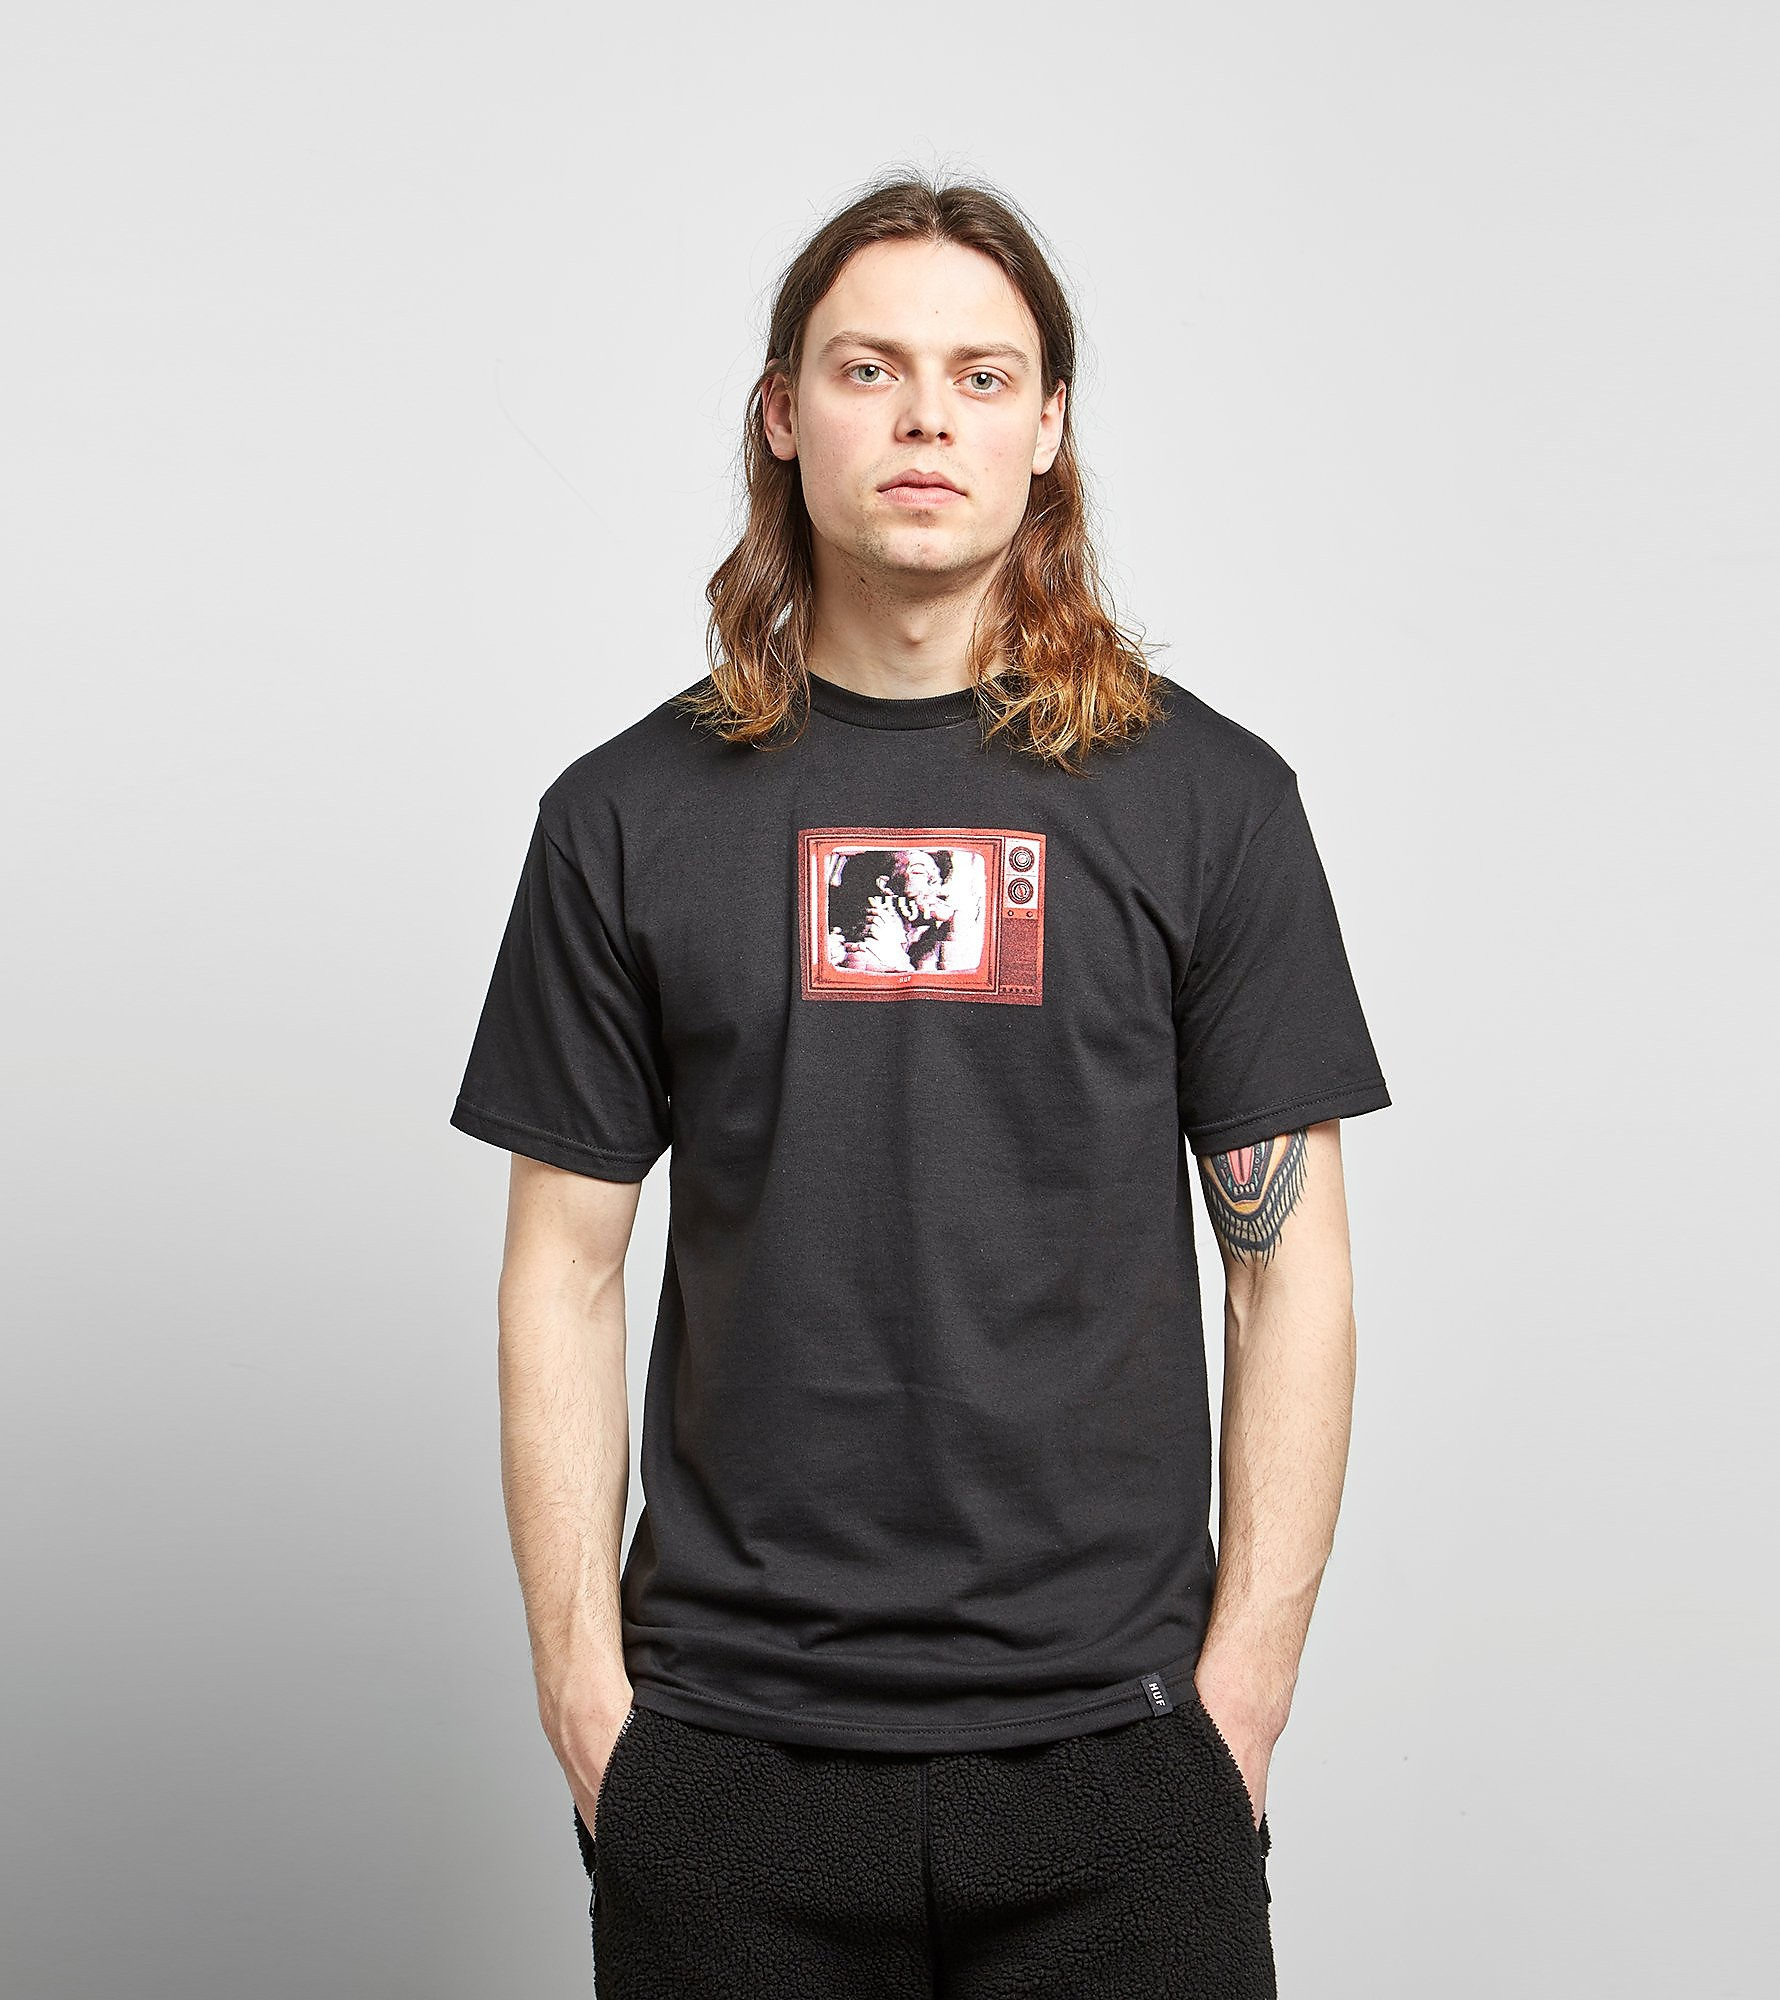 HUF Scramble TV T-Shirt - size? Exclusive